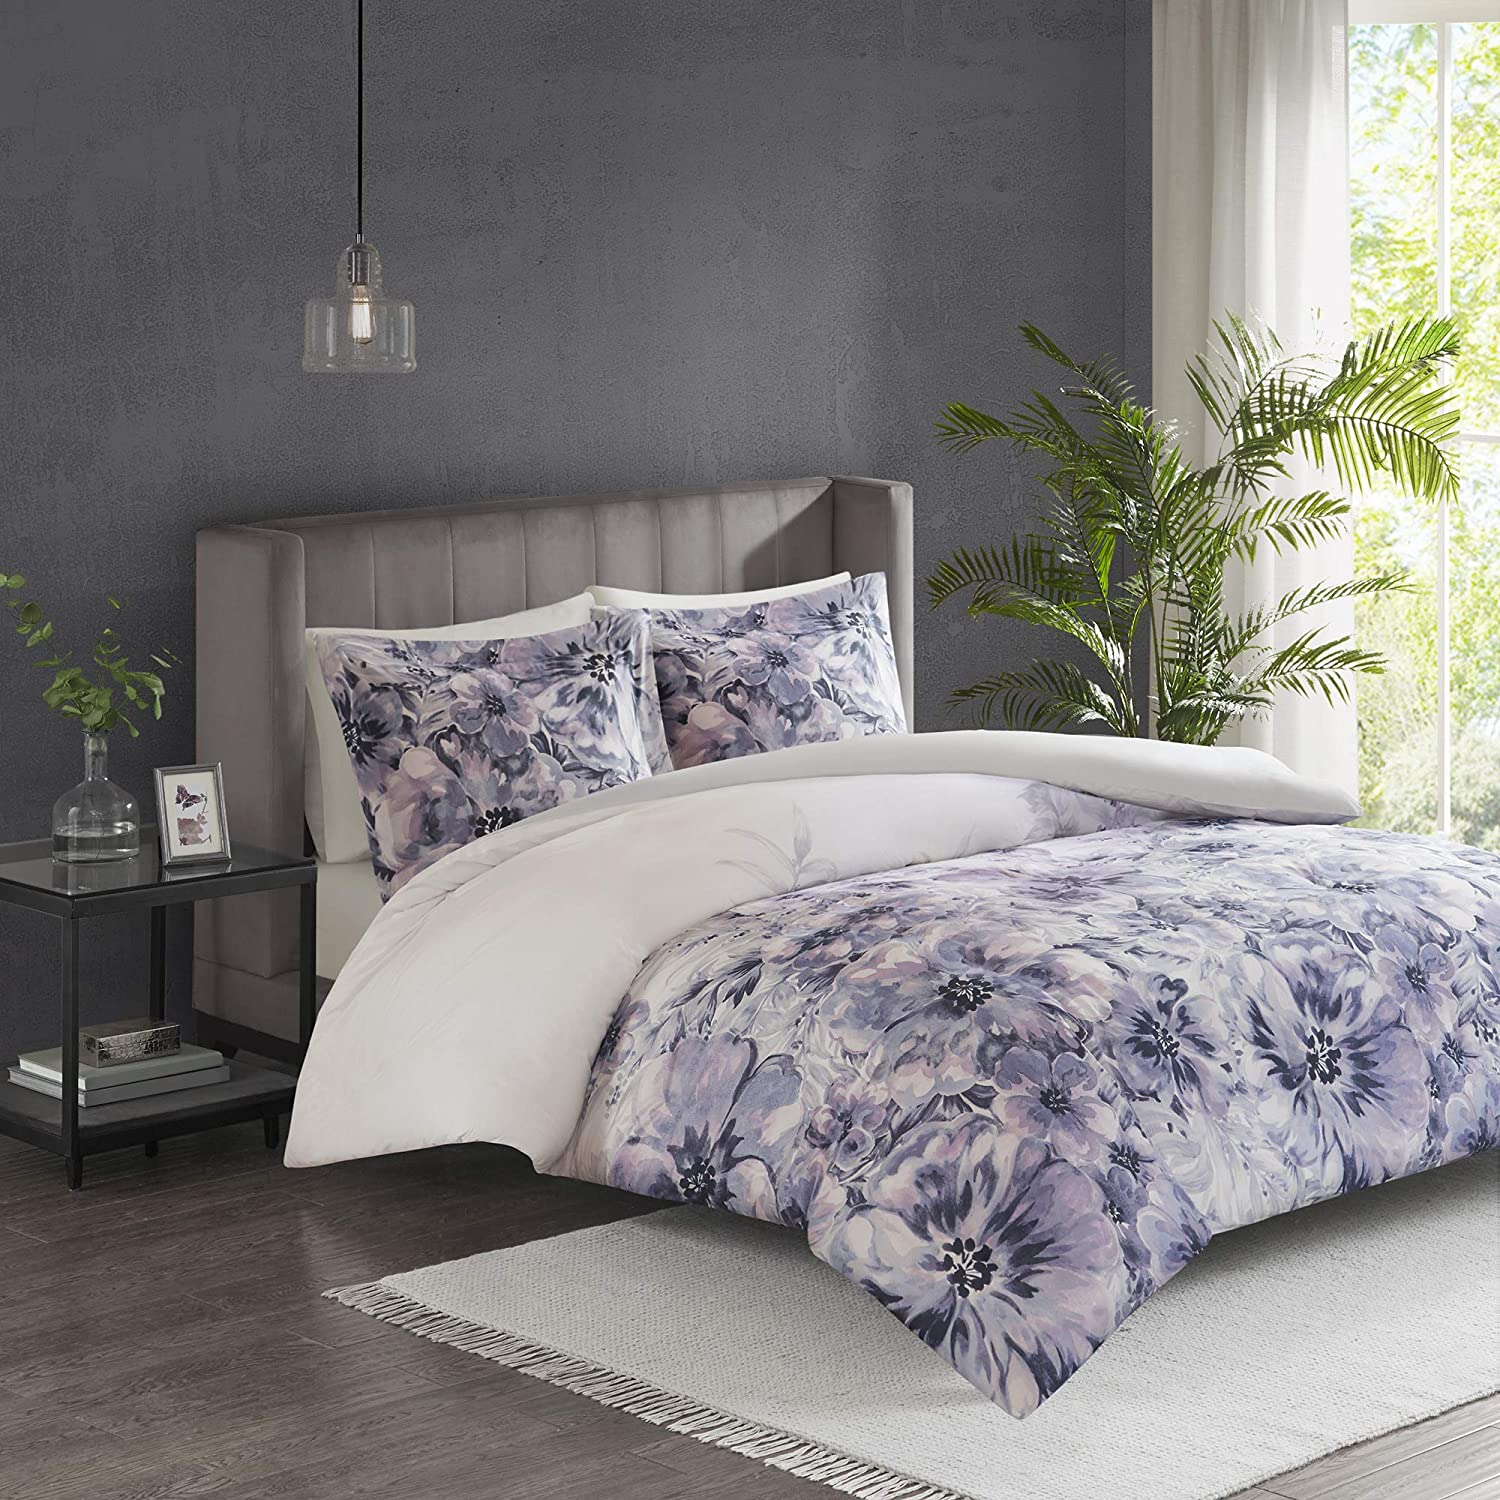 Madison Park Enza Duvet Cover Reversible Solid 100% Cotton Percale Face Corner Ties Floral Botanical Flower Pattern Water-Color Printed Ultra Soft All Season Bedding-Sets, Full/Queen, Purple